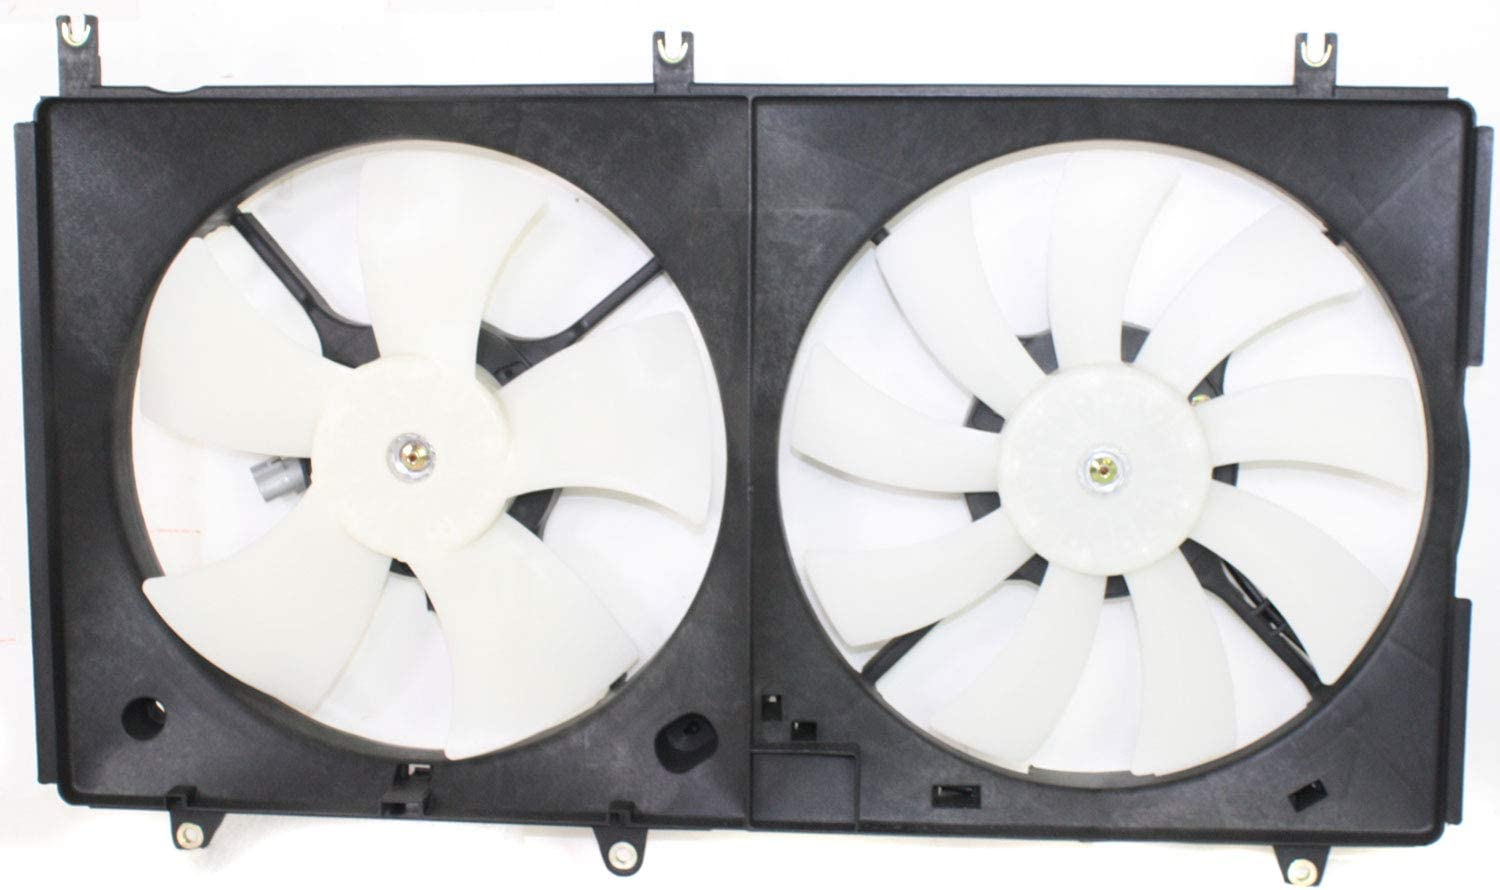 Garage-Pro Cooling Super intense SALE Fan Assembly 2004-2005 for Purchase MITSUBISHI GALANT